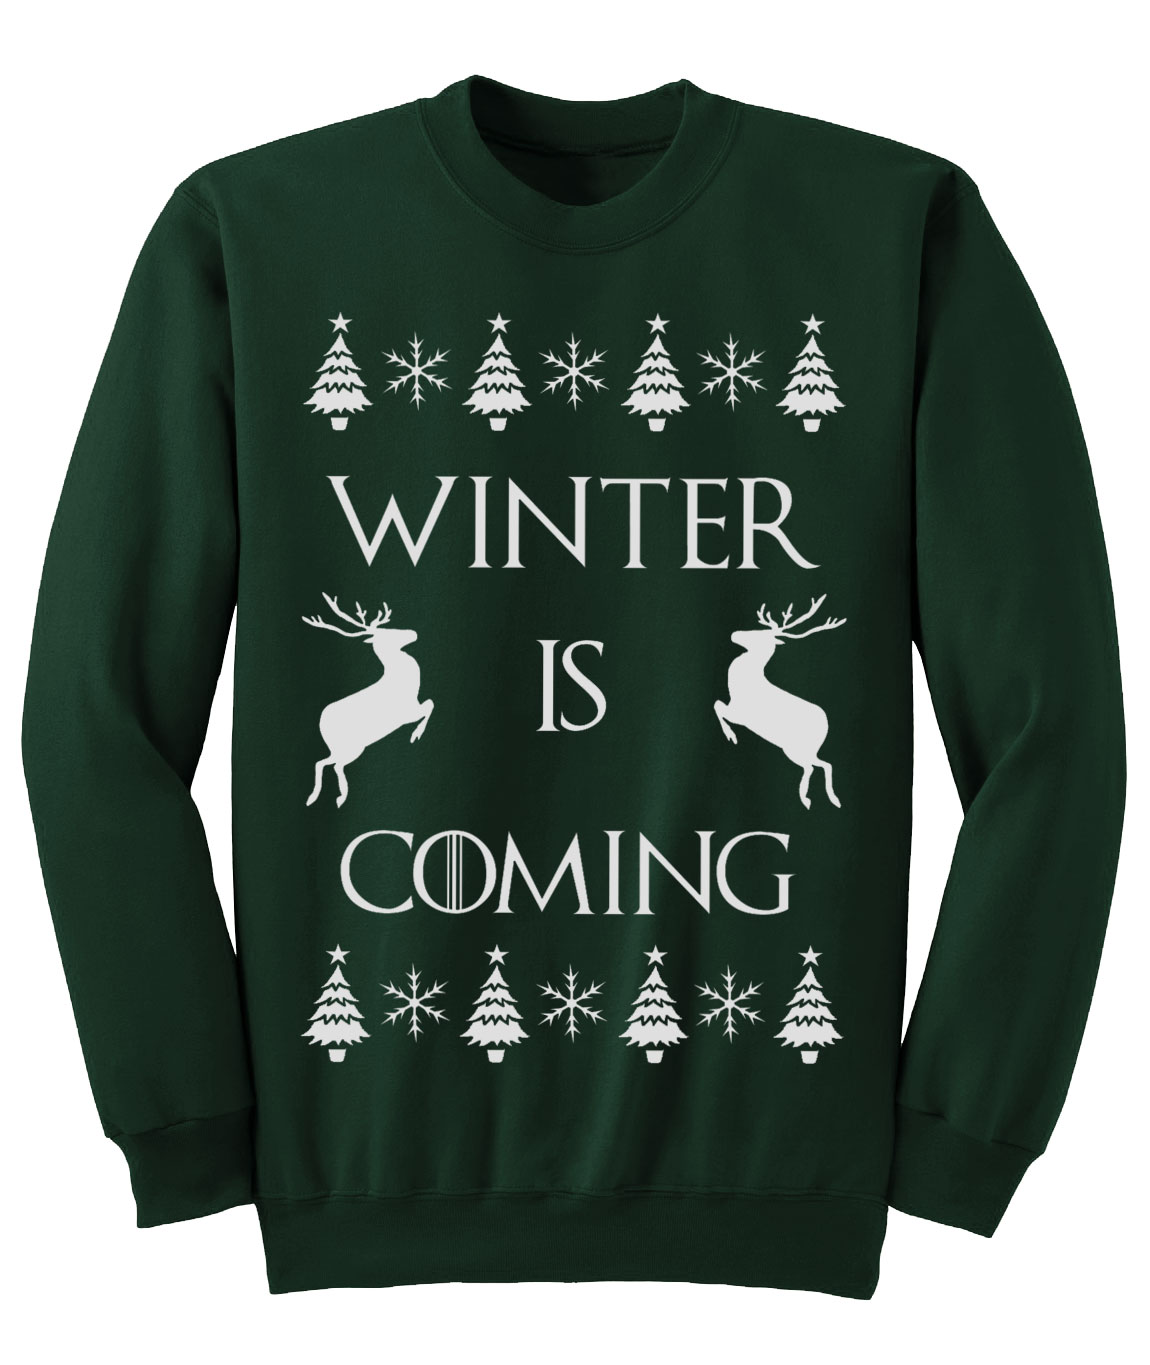 Super Game of Thrones 'Winter is Coming' CHRISTMAS jumper Sweatshirt NEW  PV25